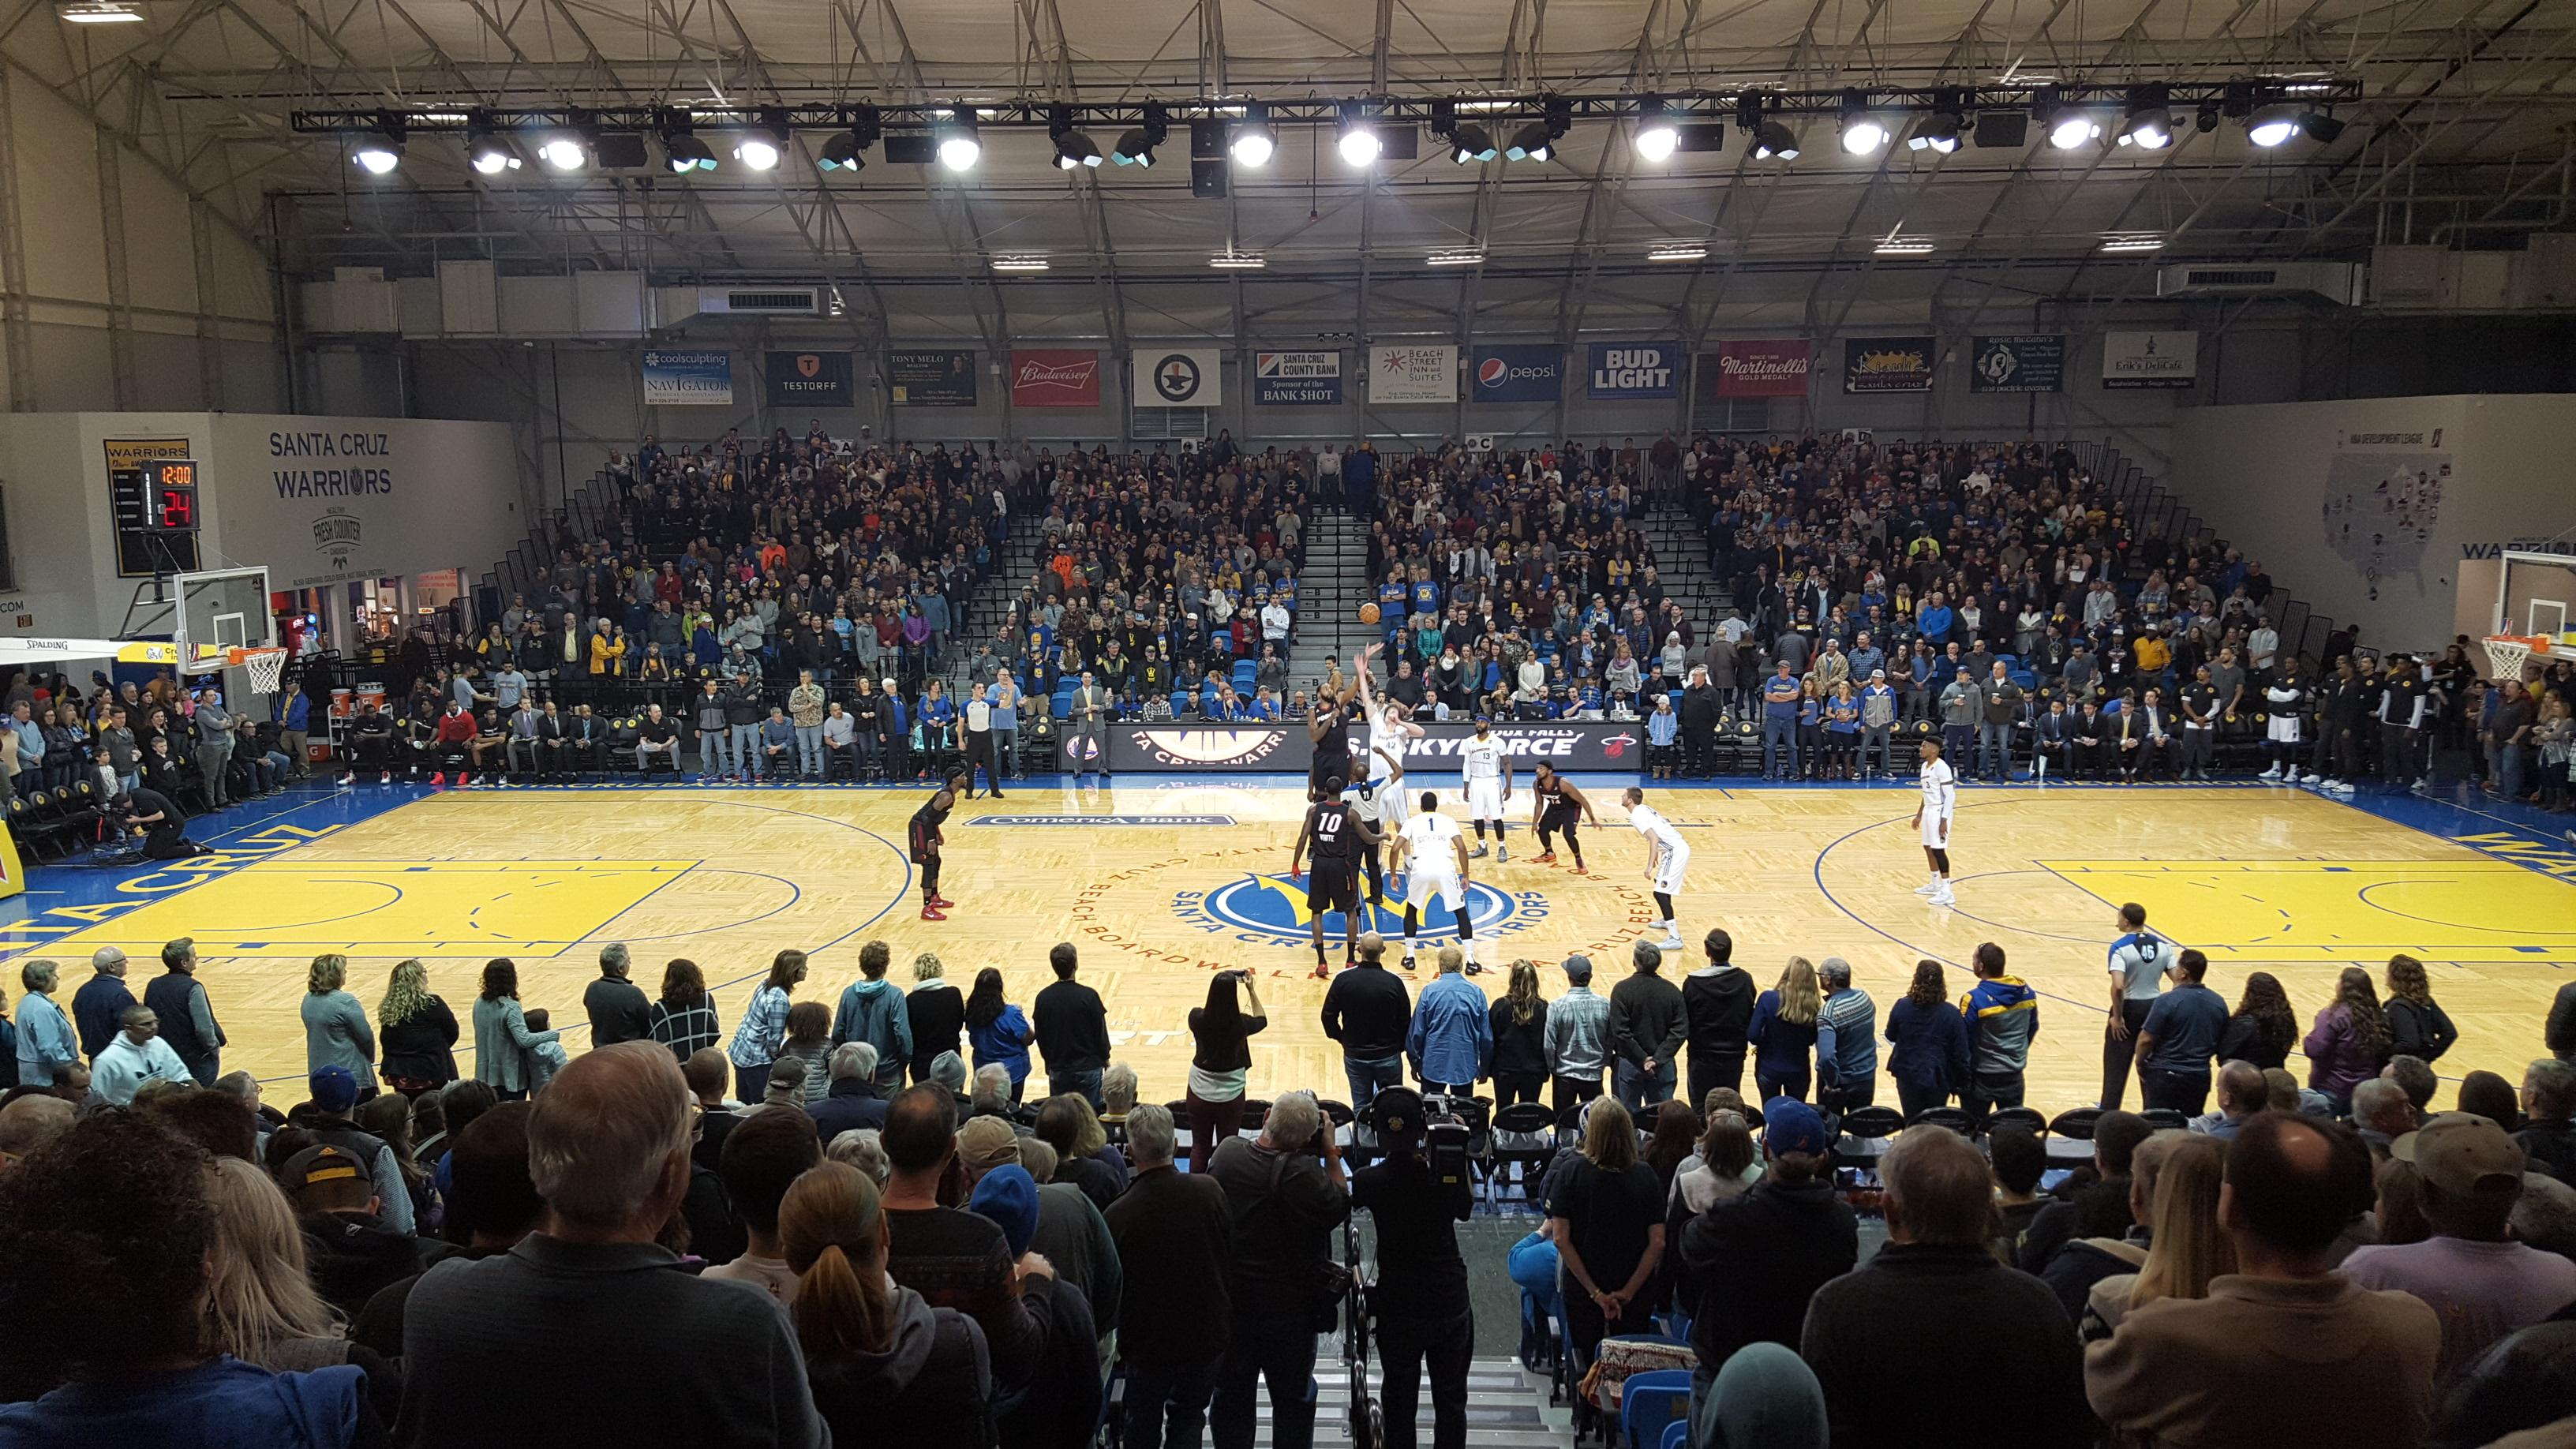 Kaiser Permanente Arena Section J Row 15 Seat 1